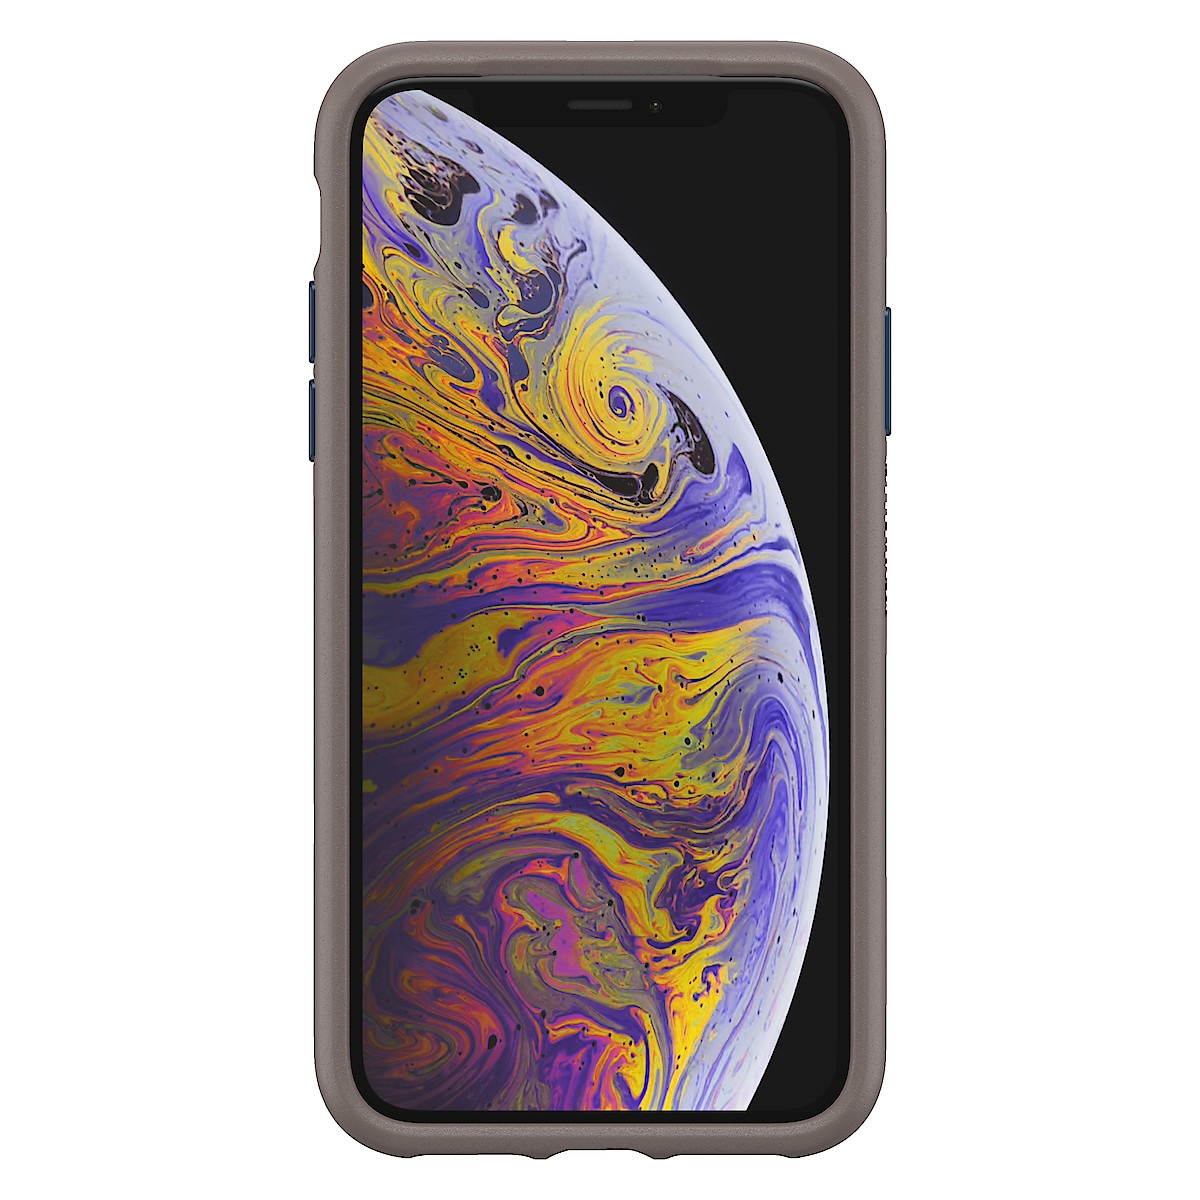 Suojakuori iPhone X/XS, Otterbox Symmetry OTTER+POP